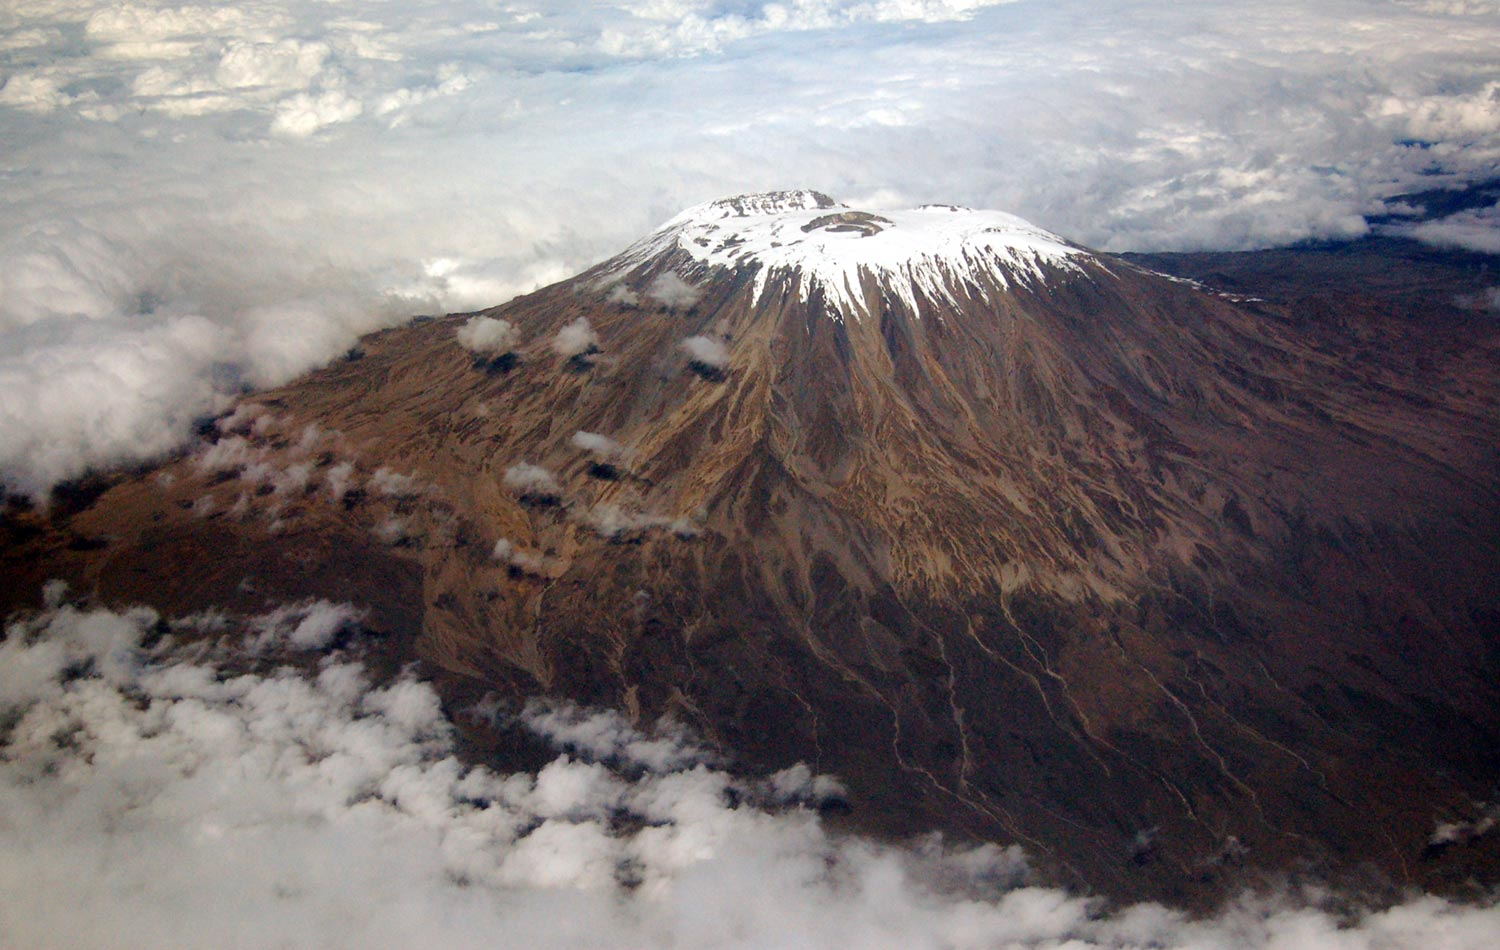 research findings showed that Kilimanjaro glaciers began shrinking towards the end of the 19th century